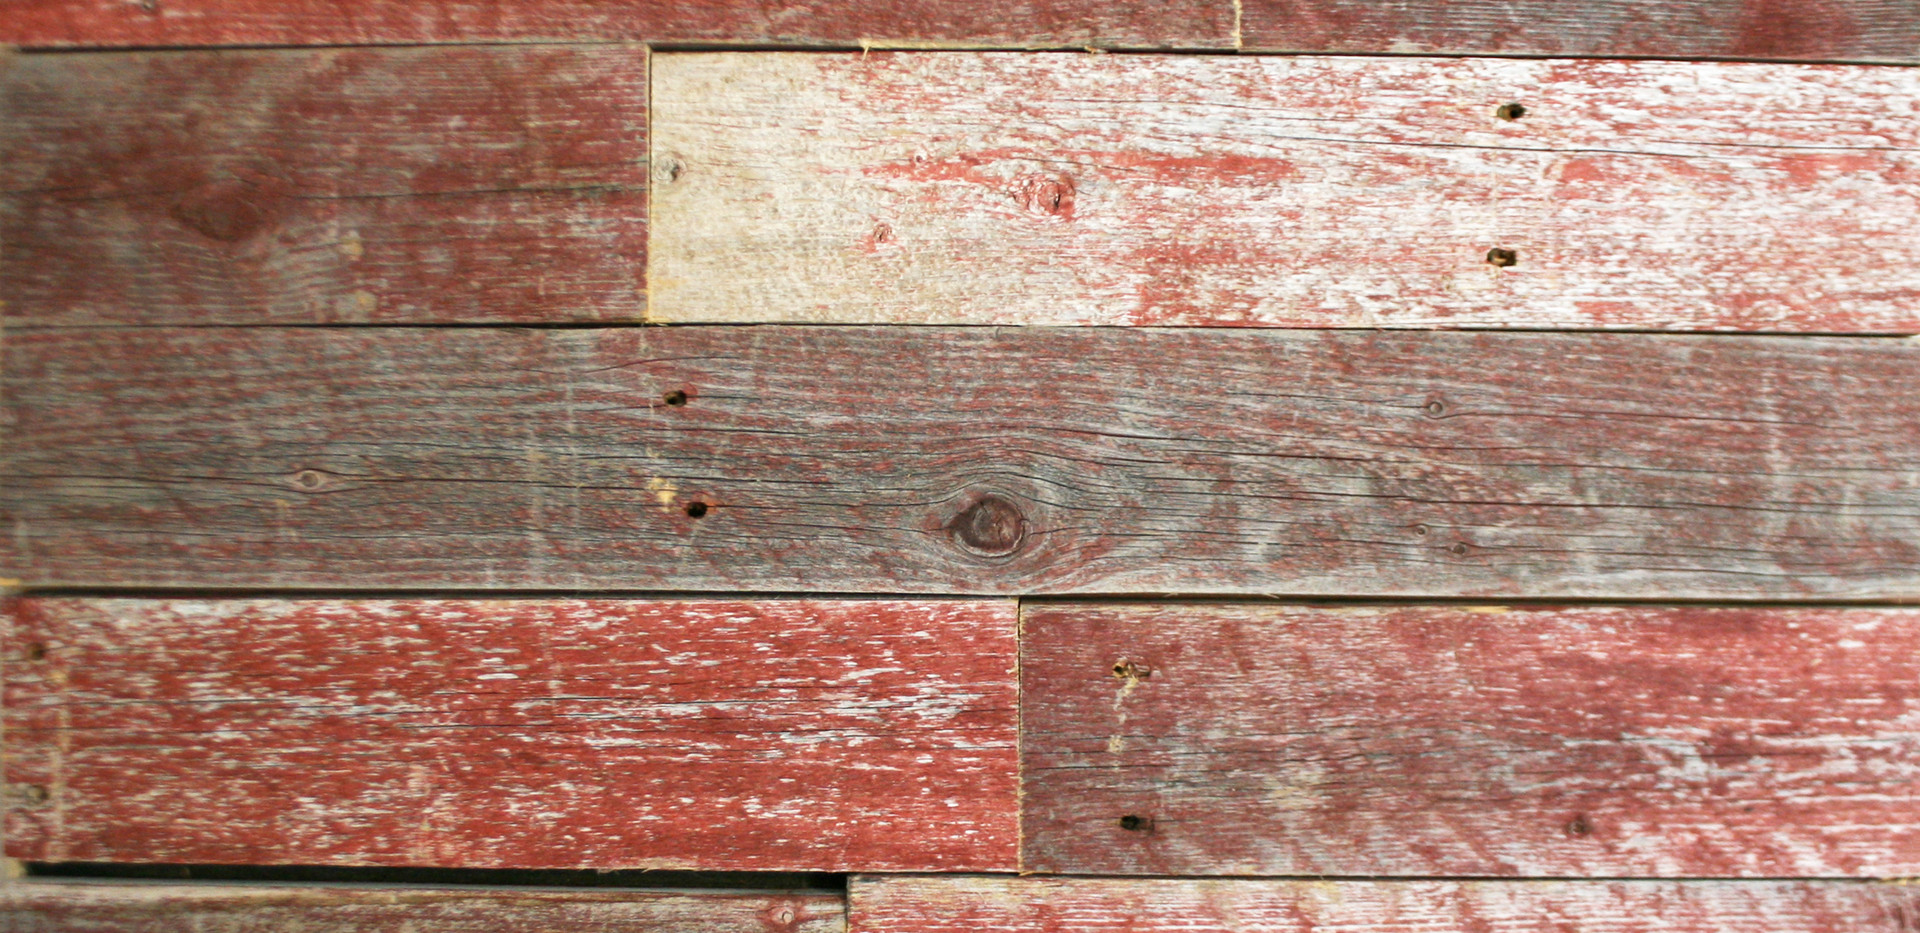 Faded Red Urban Wood